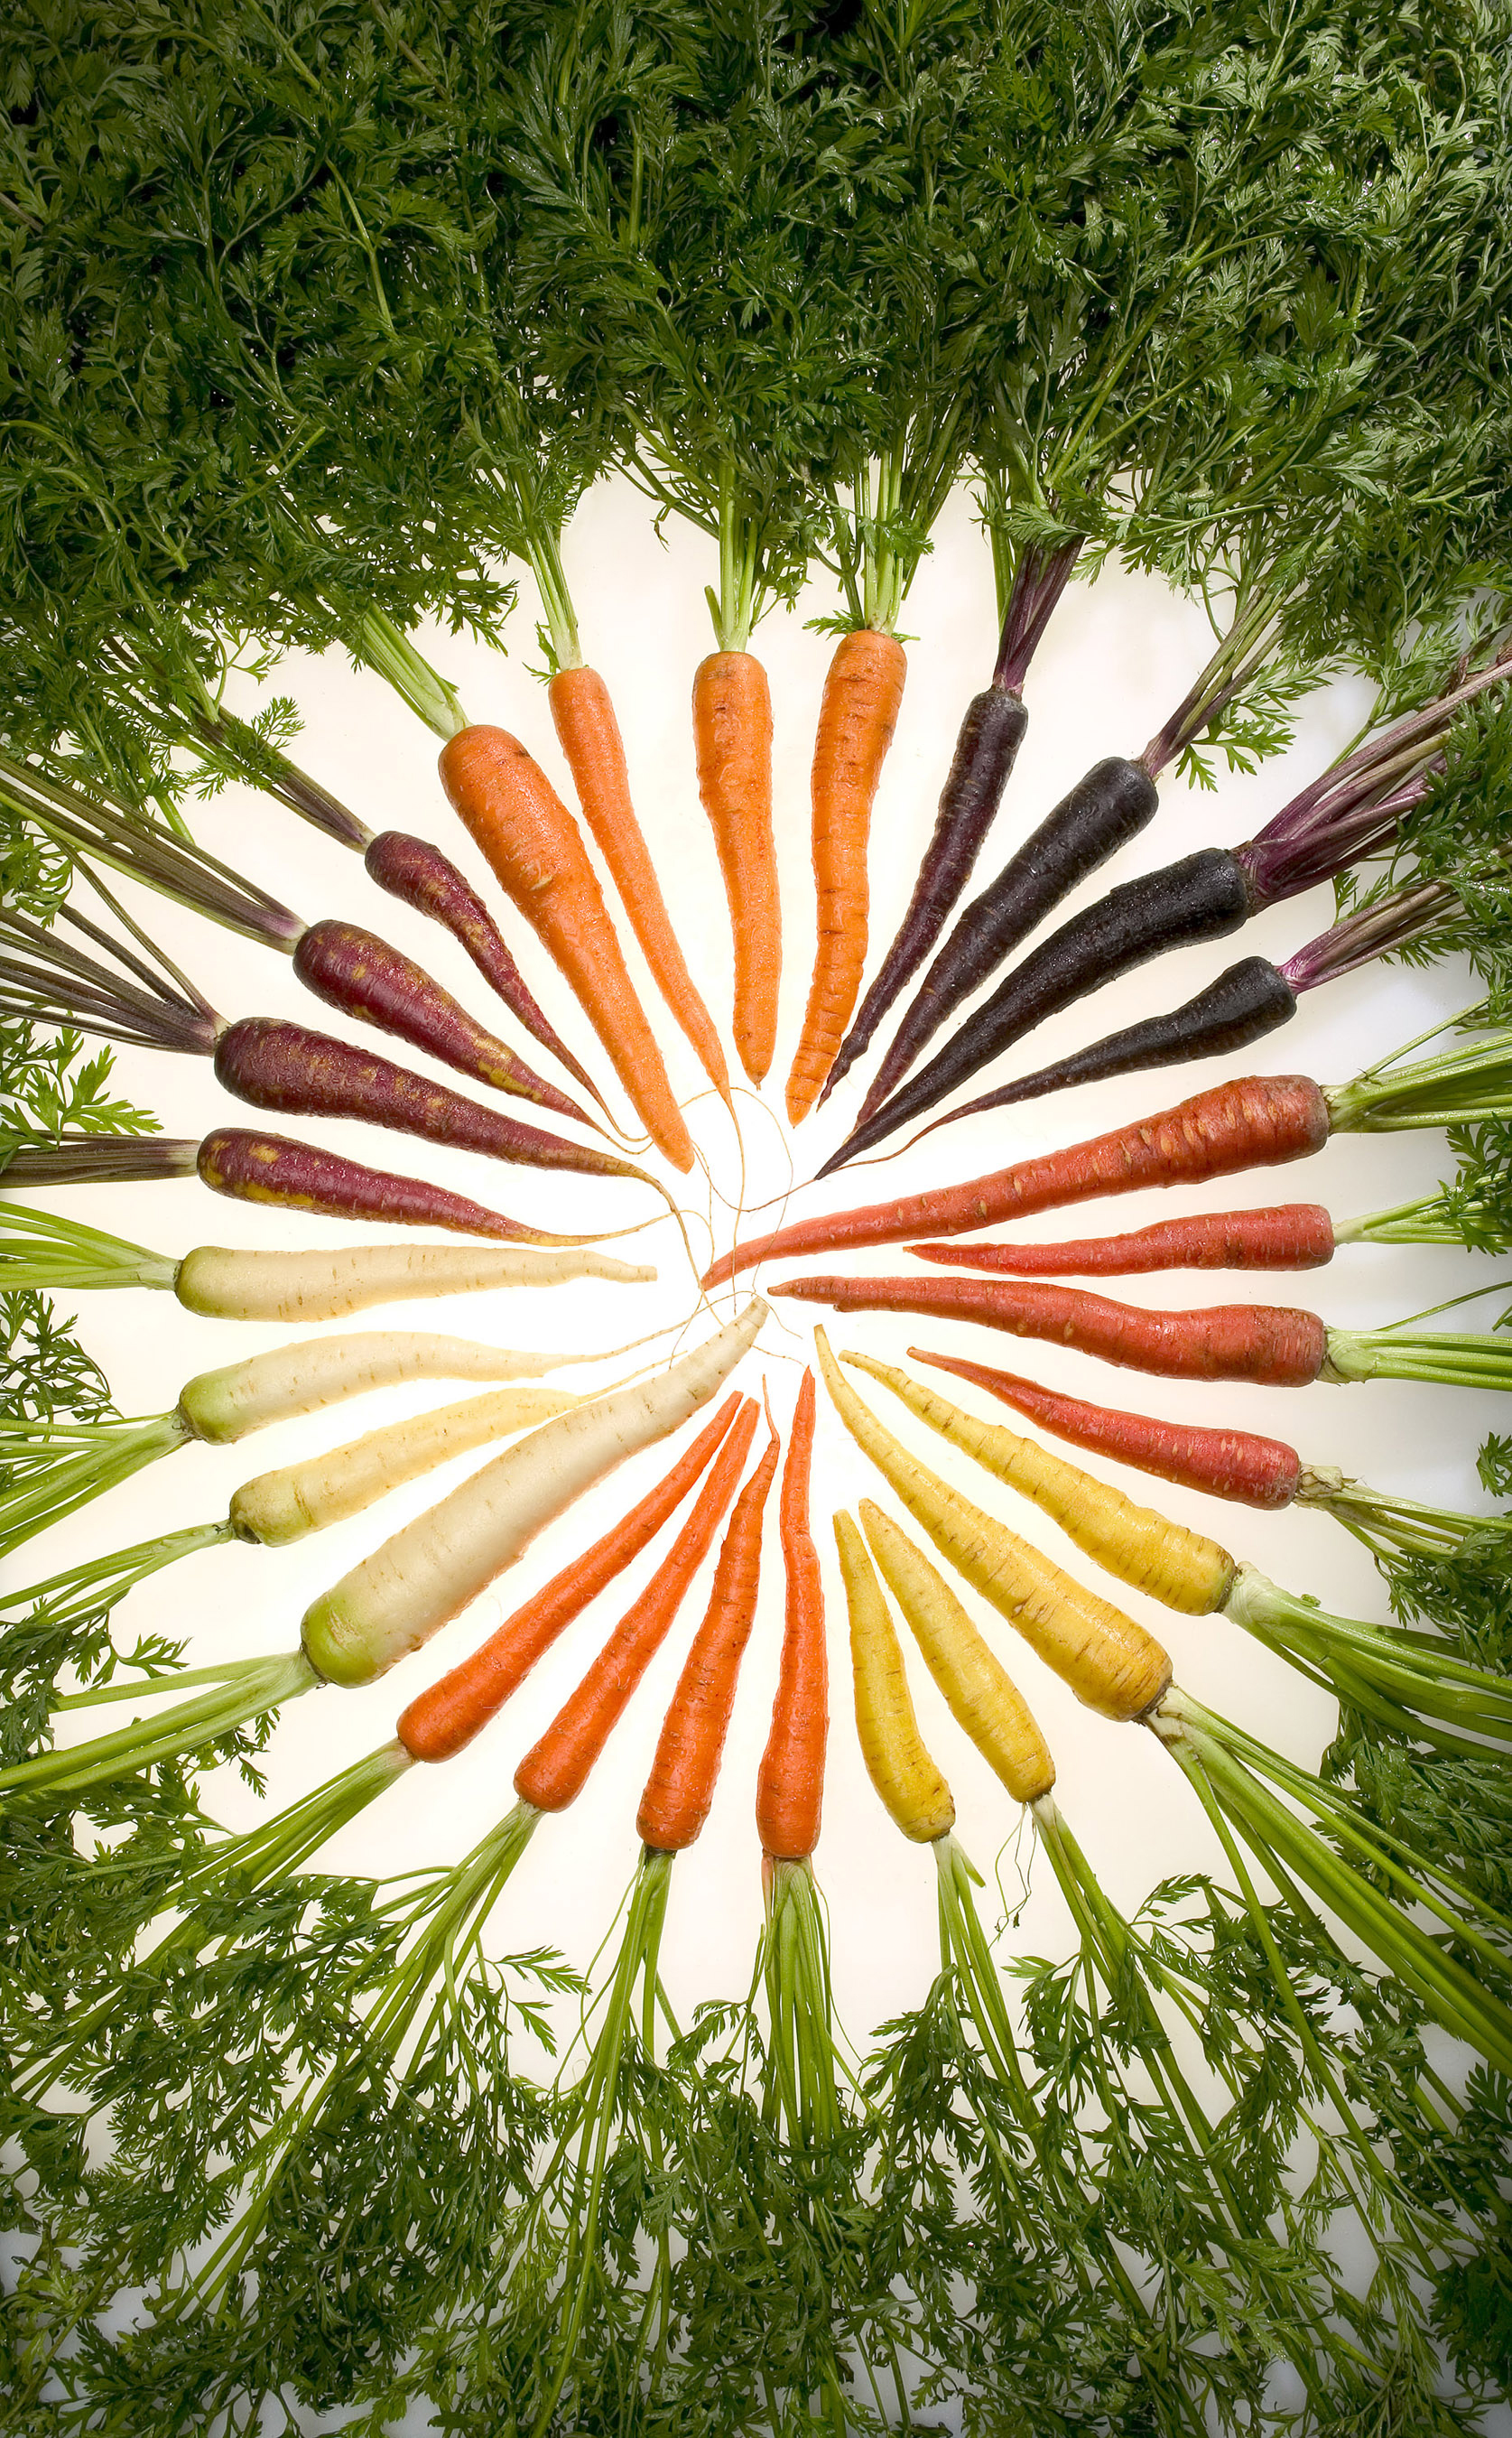 http://upload.wikimedia.org/wikipedia/commons/3/32/Carrots_of_many_colors.jpg